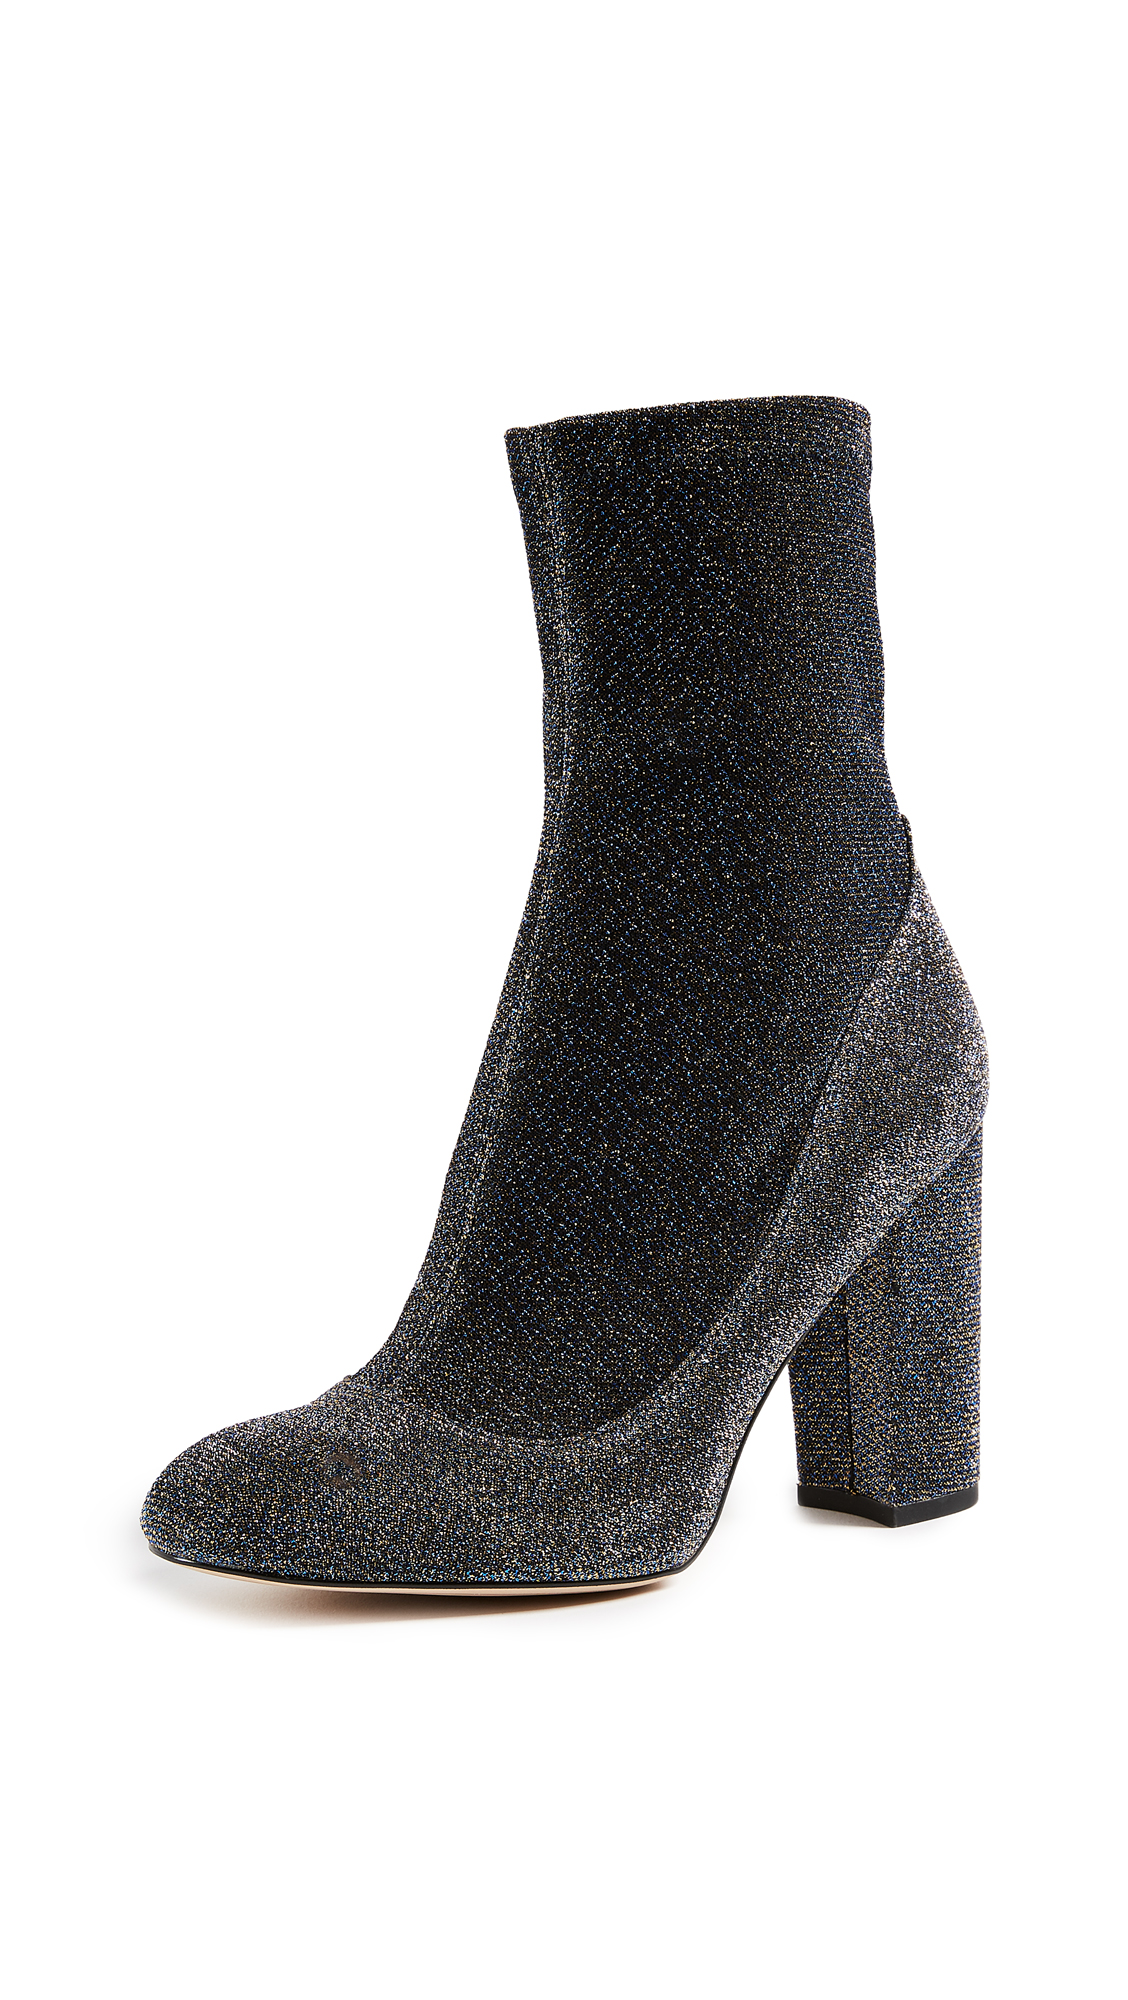 Sam Edelman Calexa Sock Booties - Blue/Gold